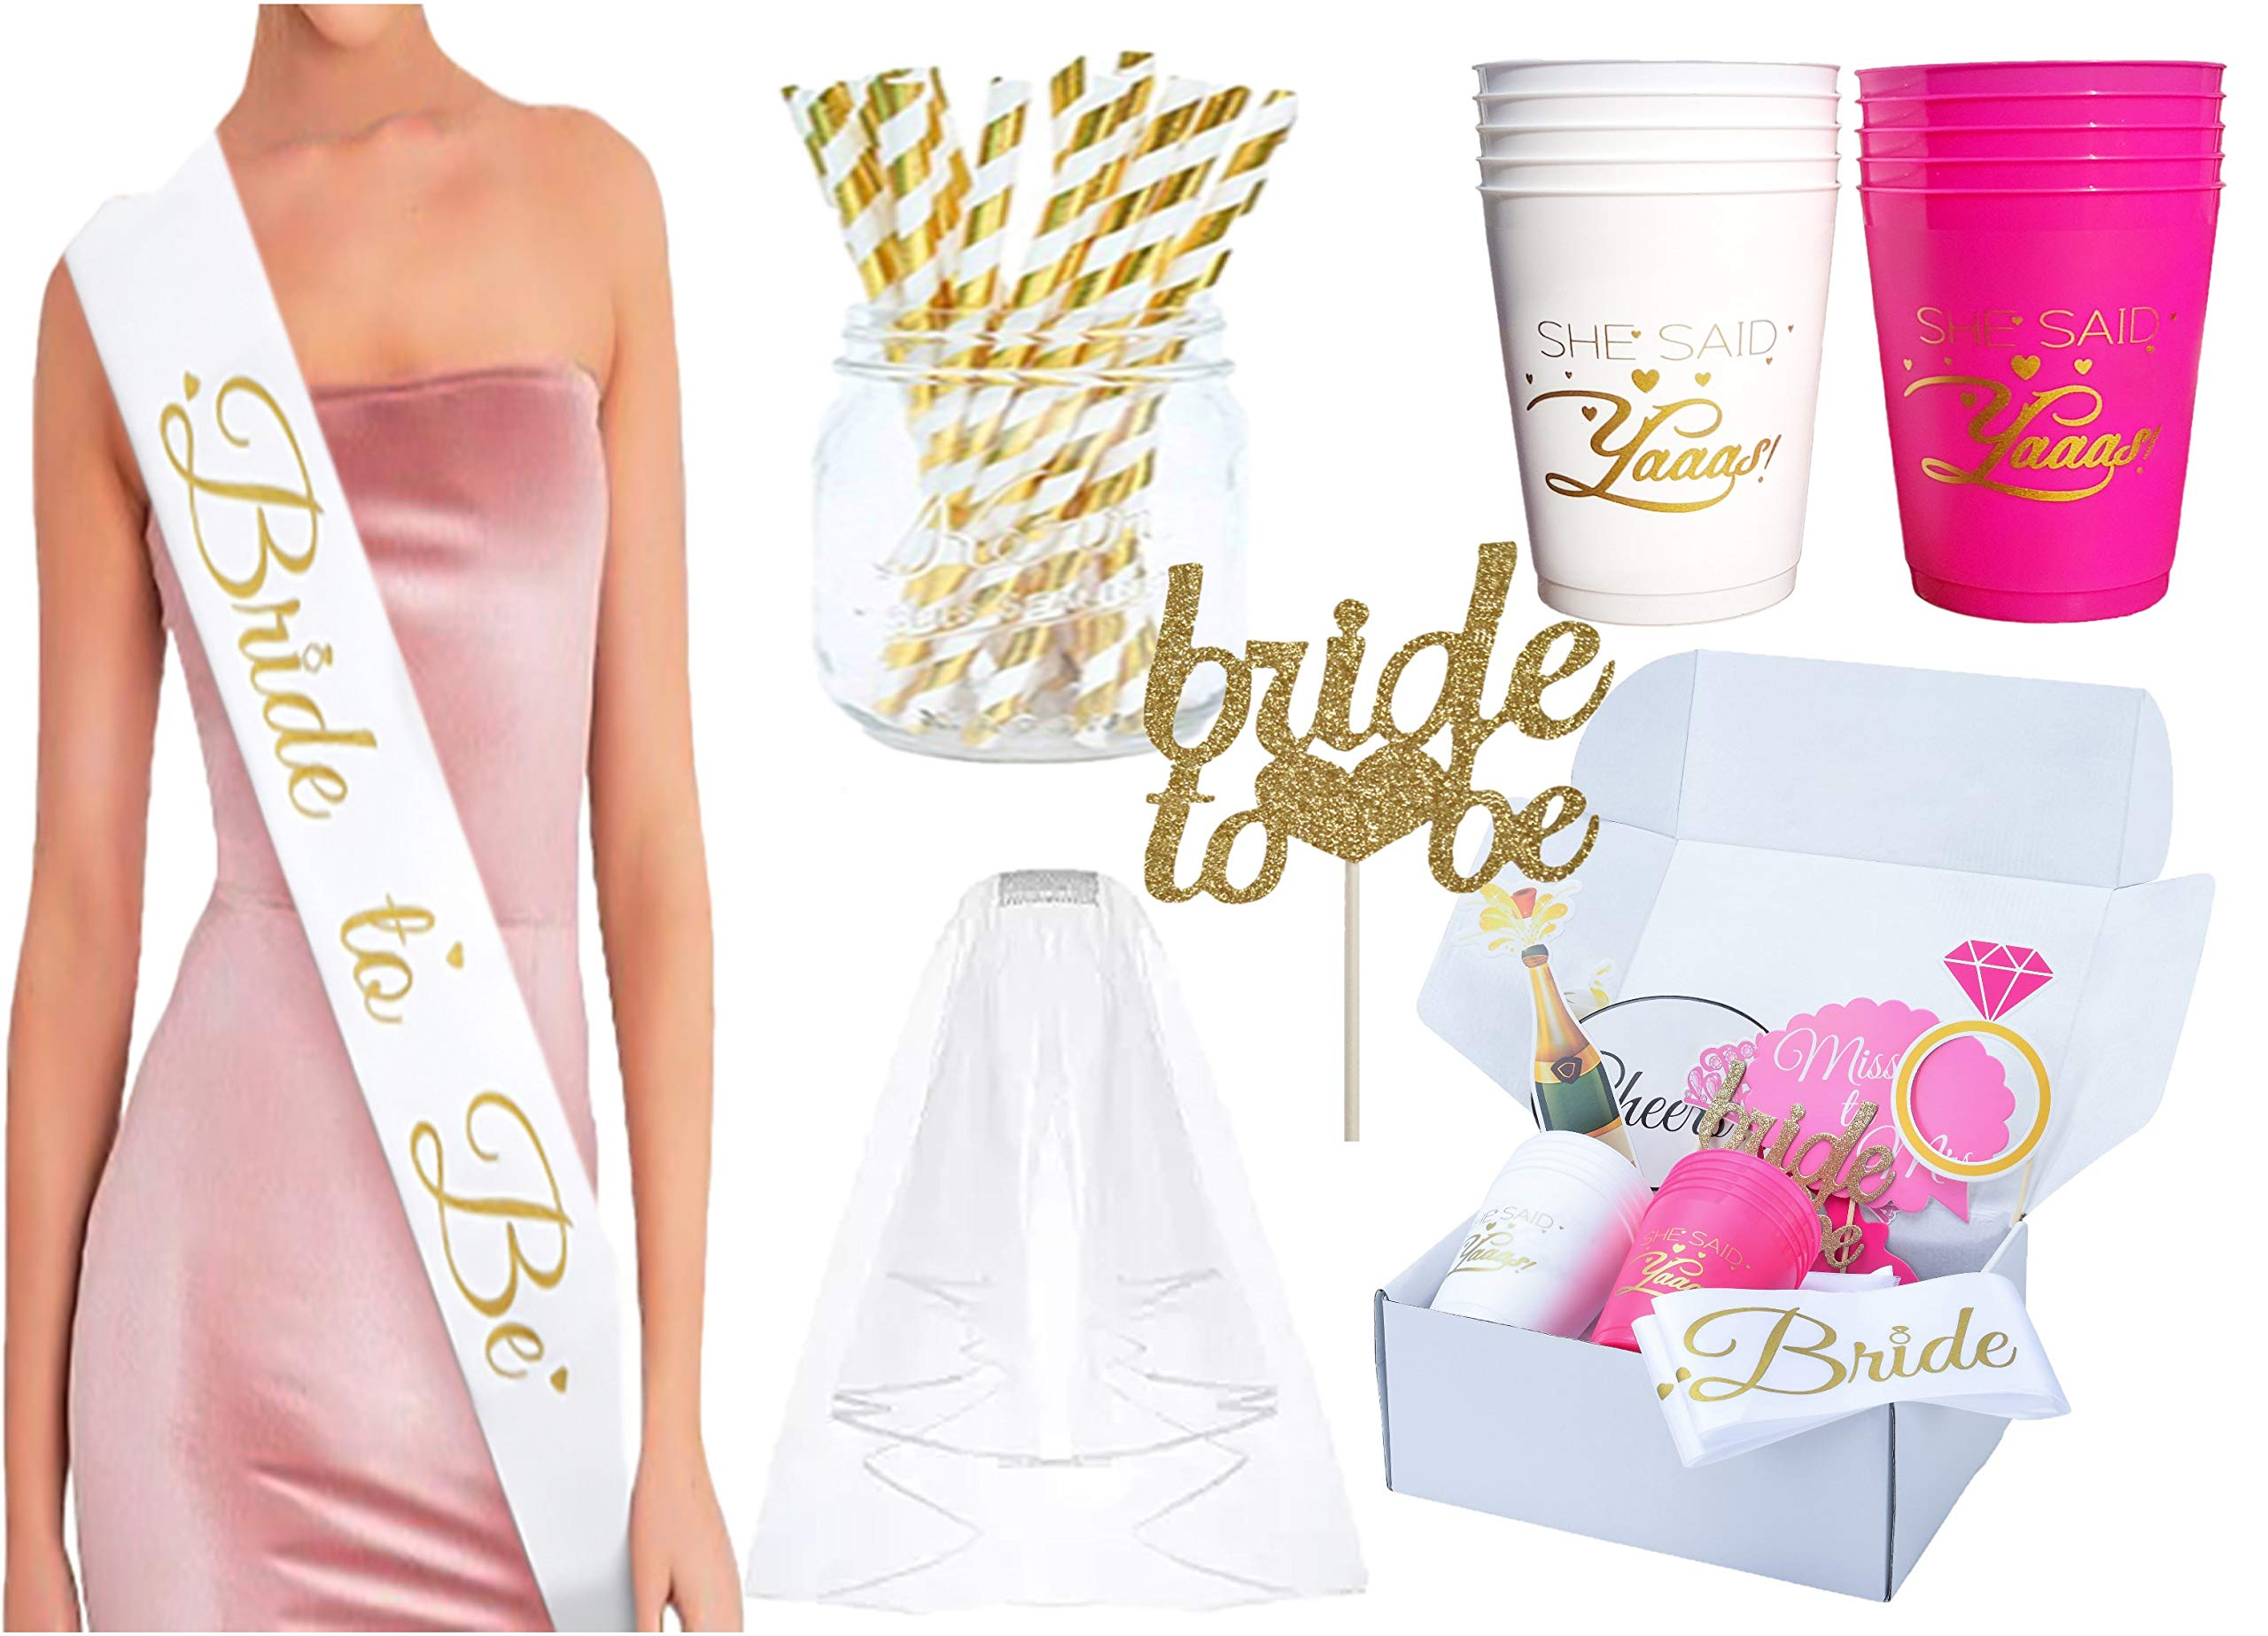 Maid with Honor Bachelorette Party Decorations, 65 Items Included, Bride to be Sash, Veil + Comb, 10 Cups, 2 Gold Banners, 10 Balloons,16 Photo Props, Cake Topper, Gold Straws, More